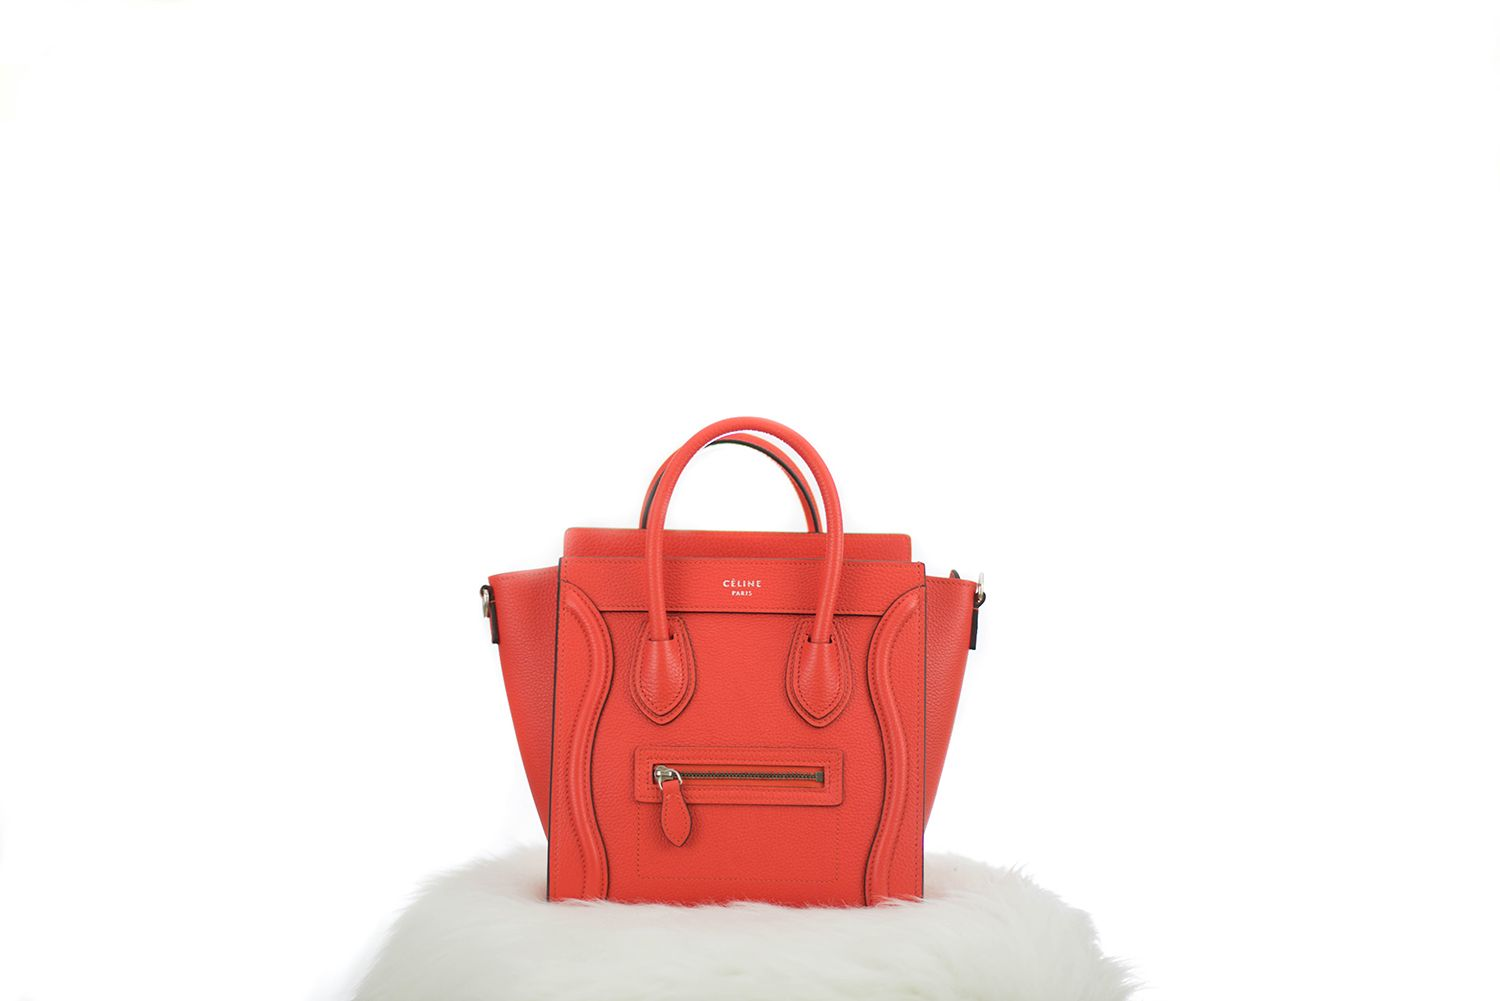 Céline Nano Luggage Vermillon / $2700